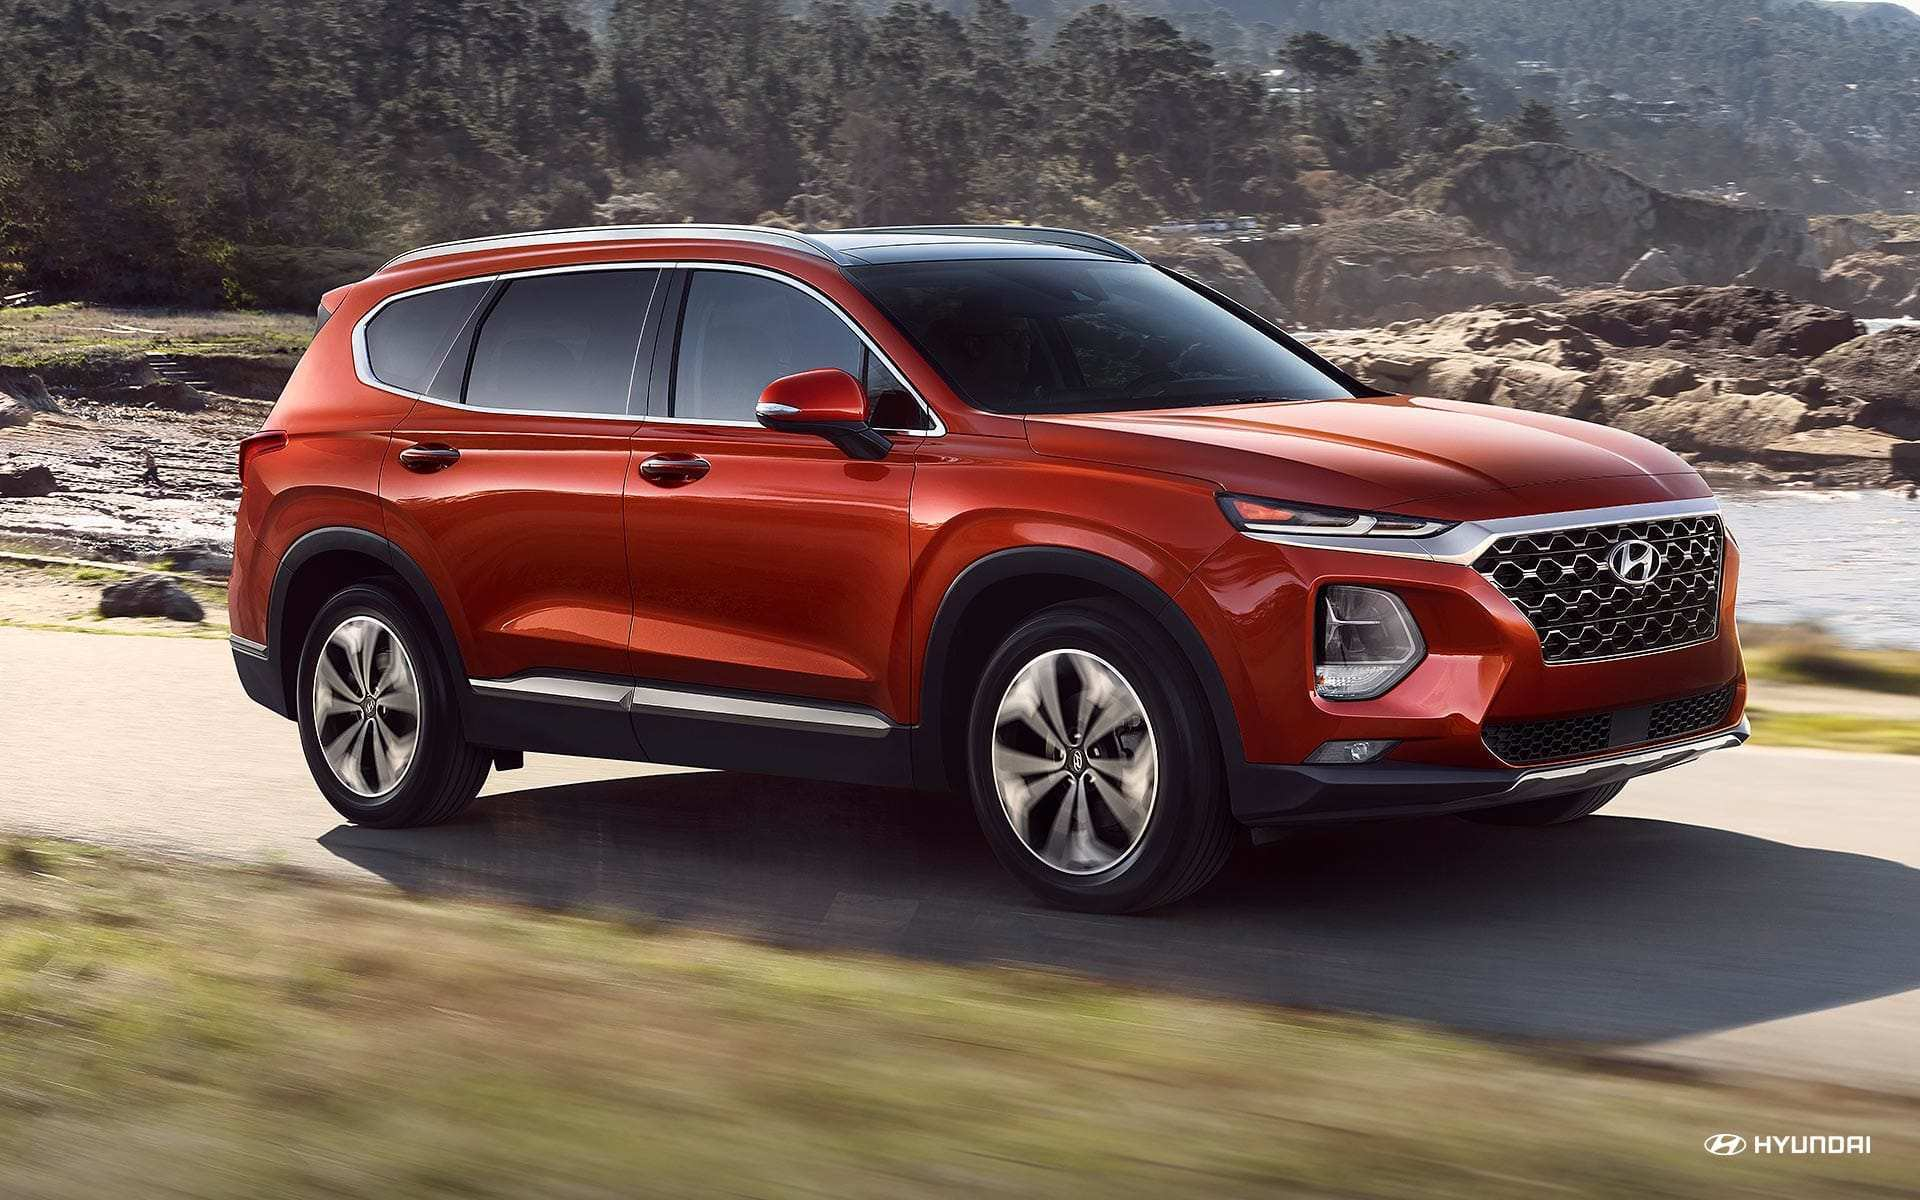 24 All New 2019 Hyundai Santa Fe Interior First Drive for 2019 Hyundai Santa Fe Interior